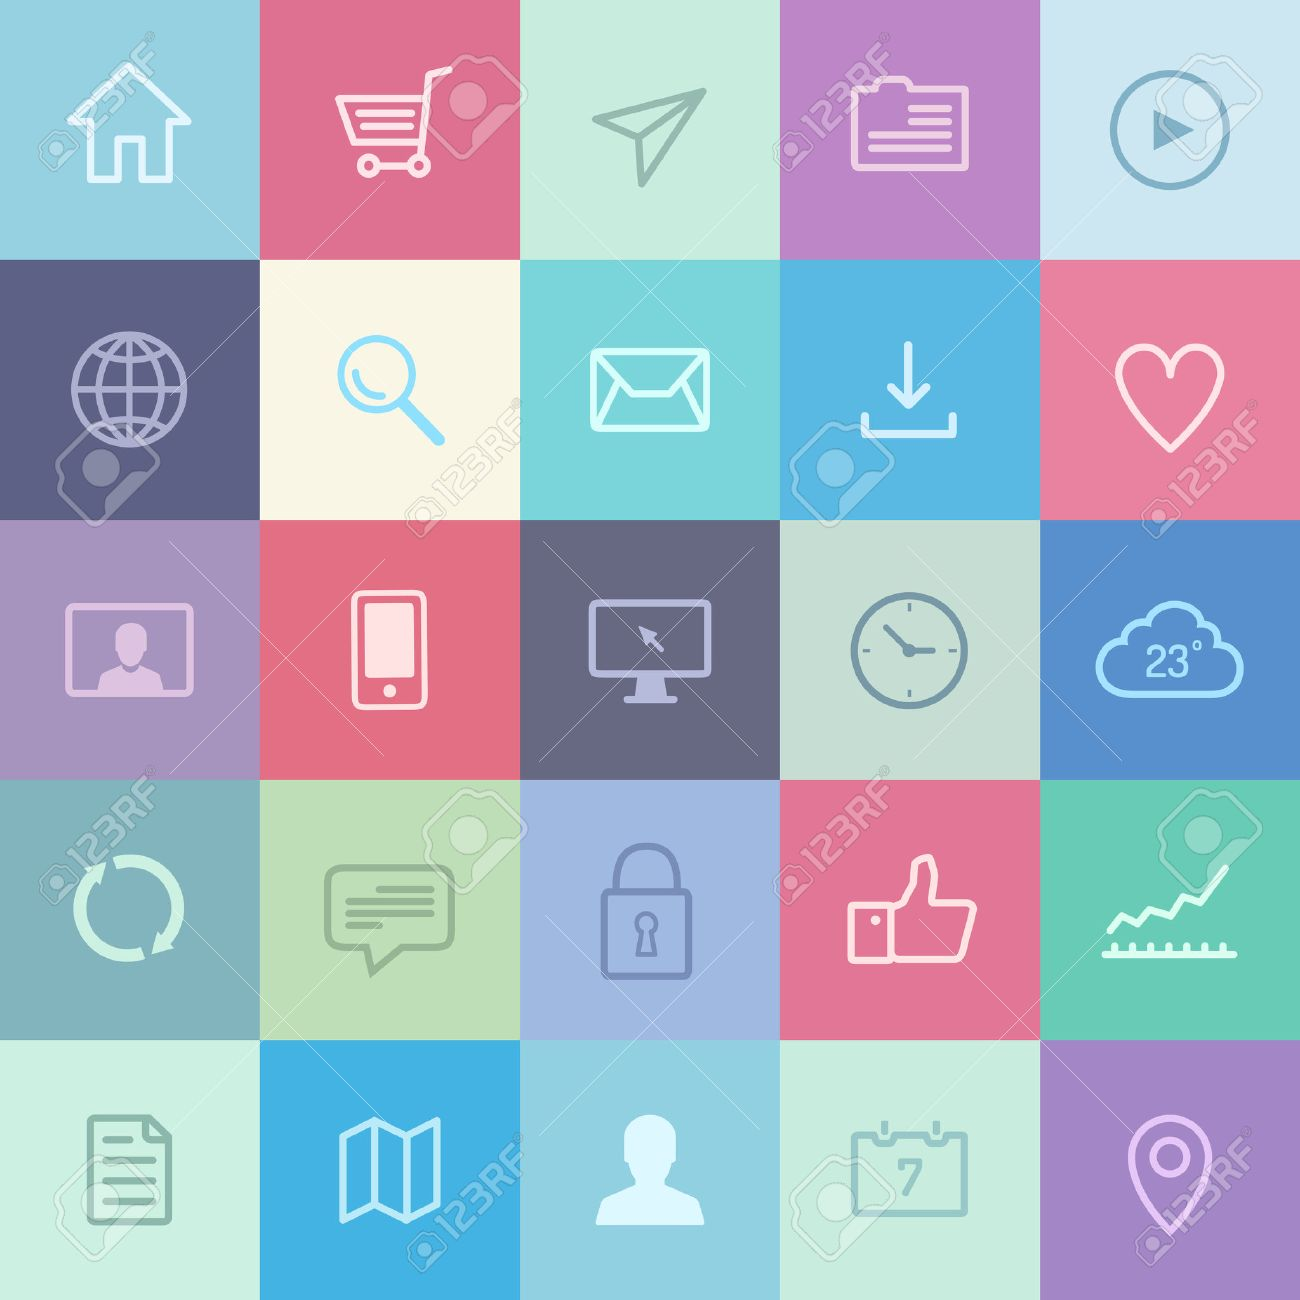 Flat design icons of various